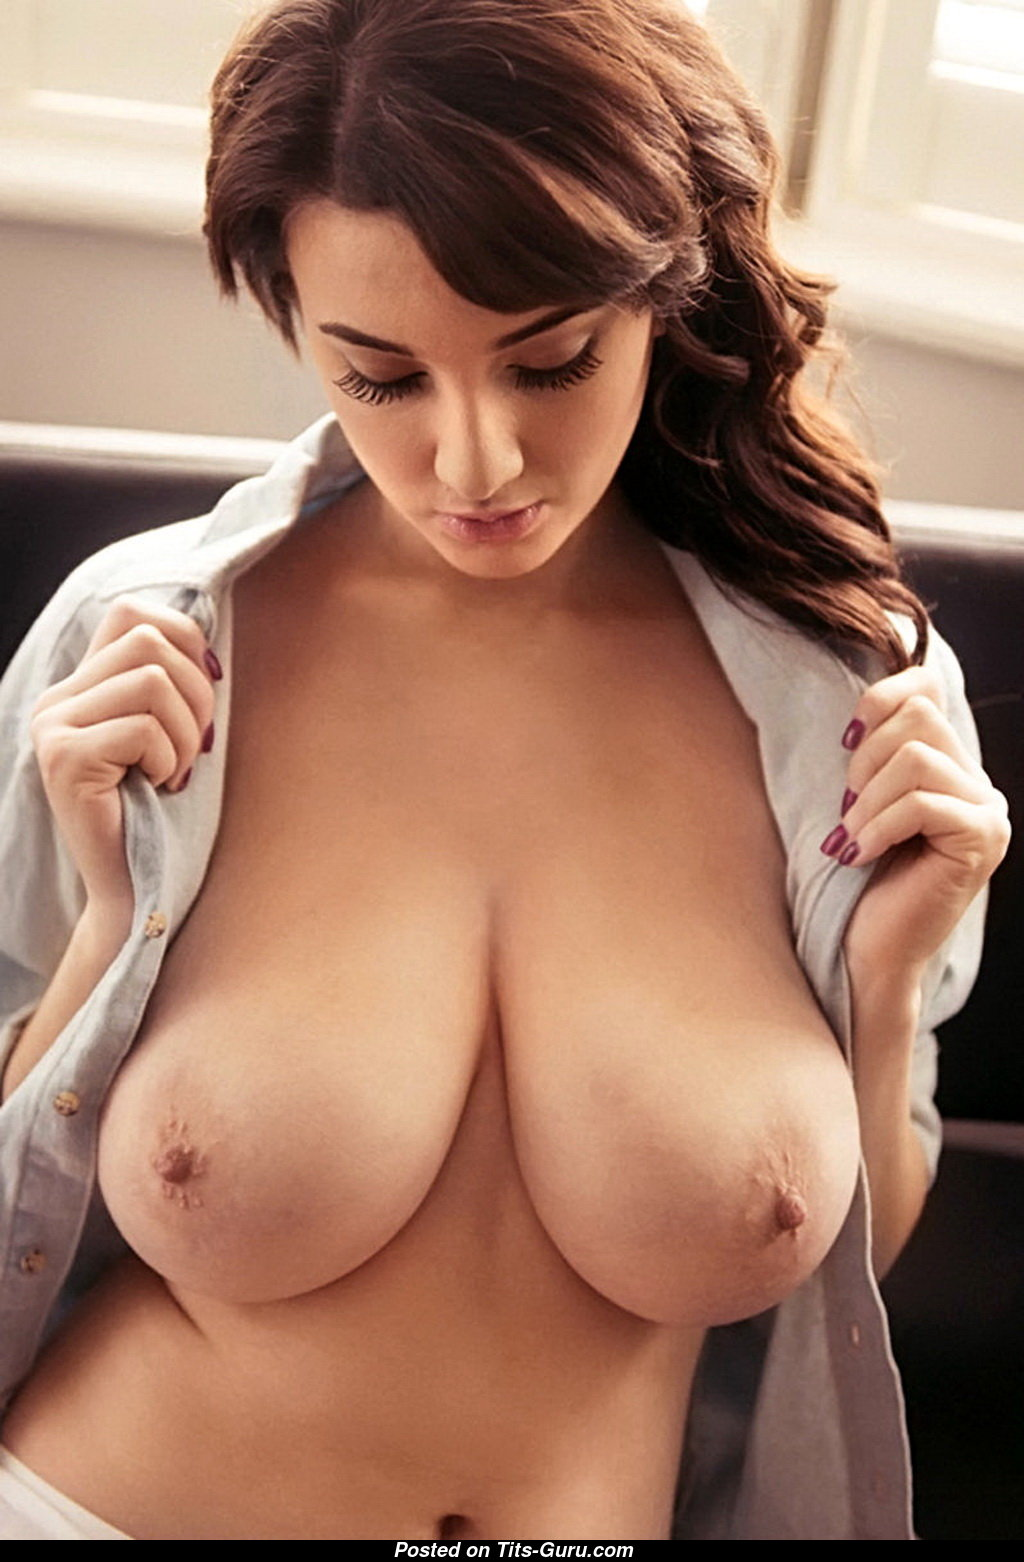 Huge natural breasts nude